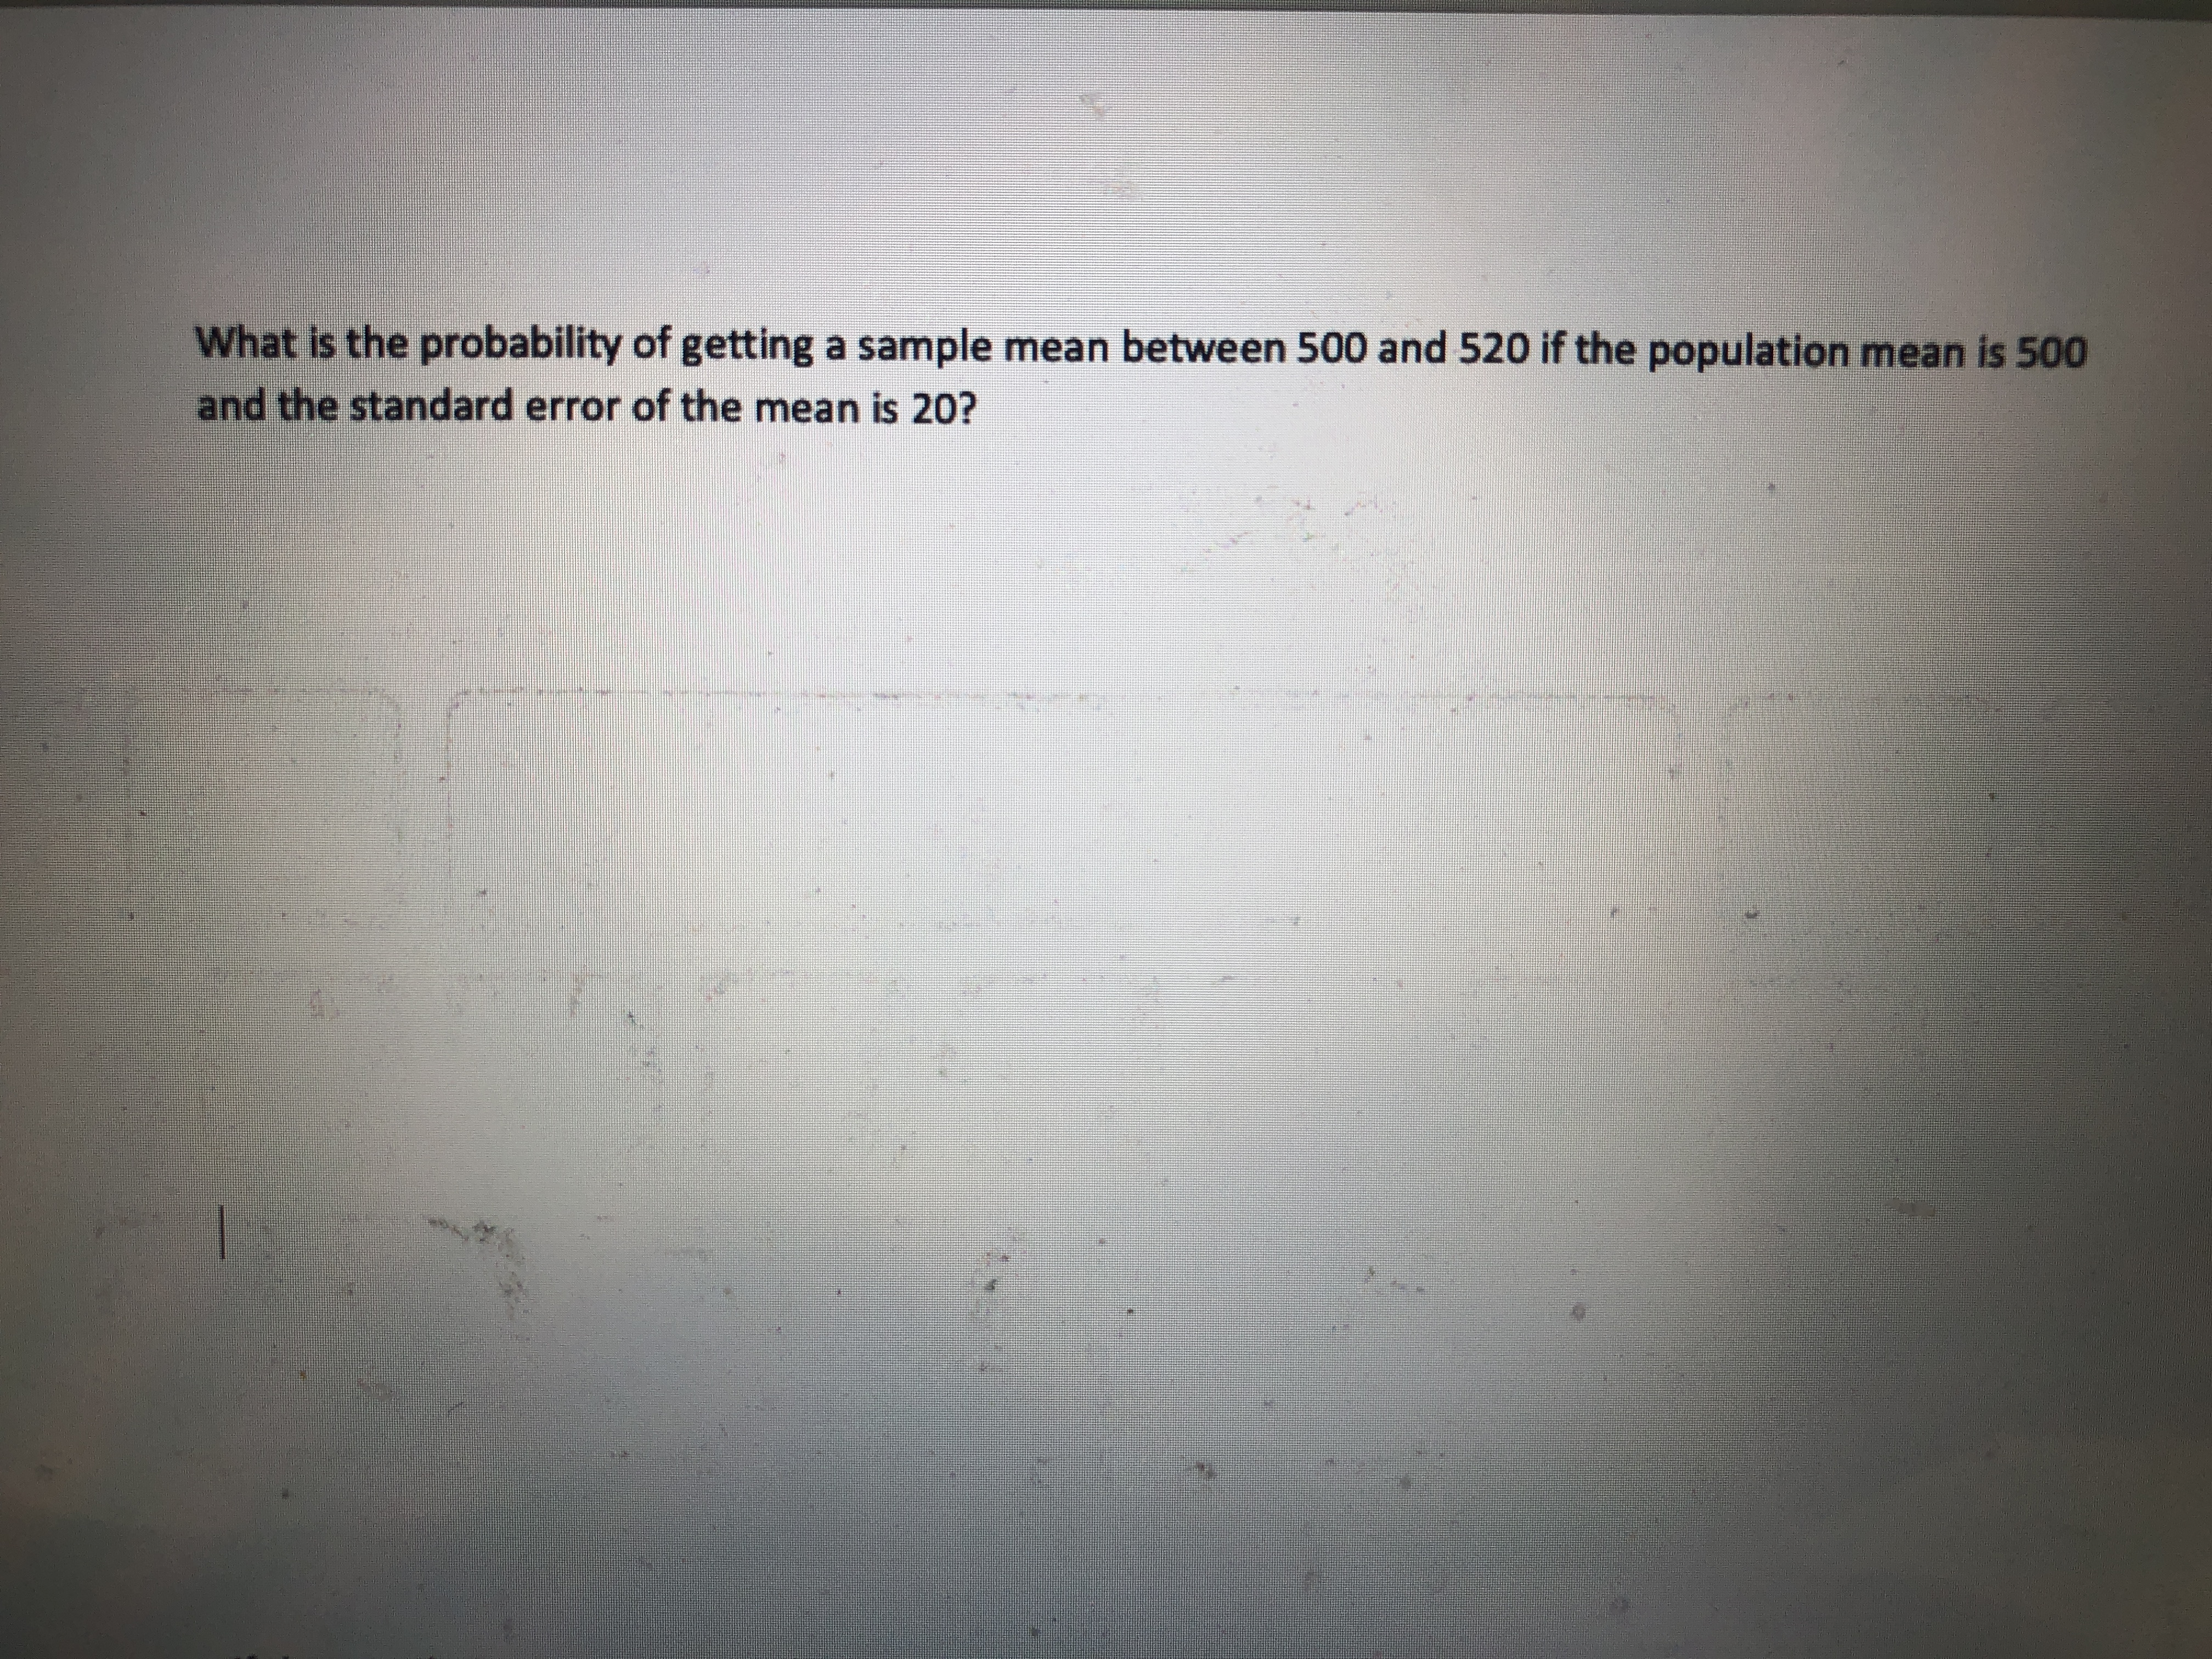 What is the probability of getting a sample mean between 500 and 520 if the population mean is 500 and the standard error of the mean is 20?